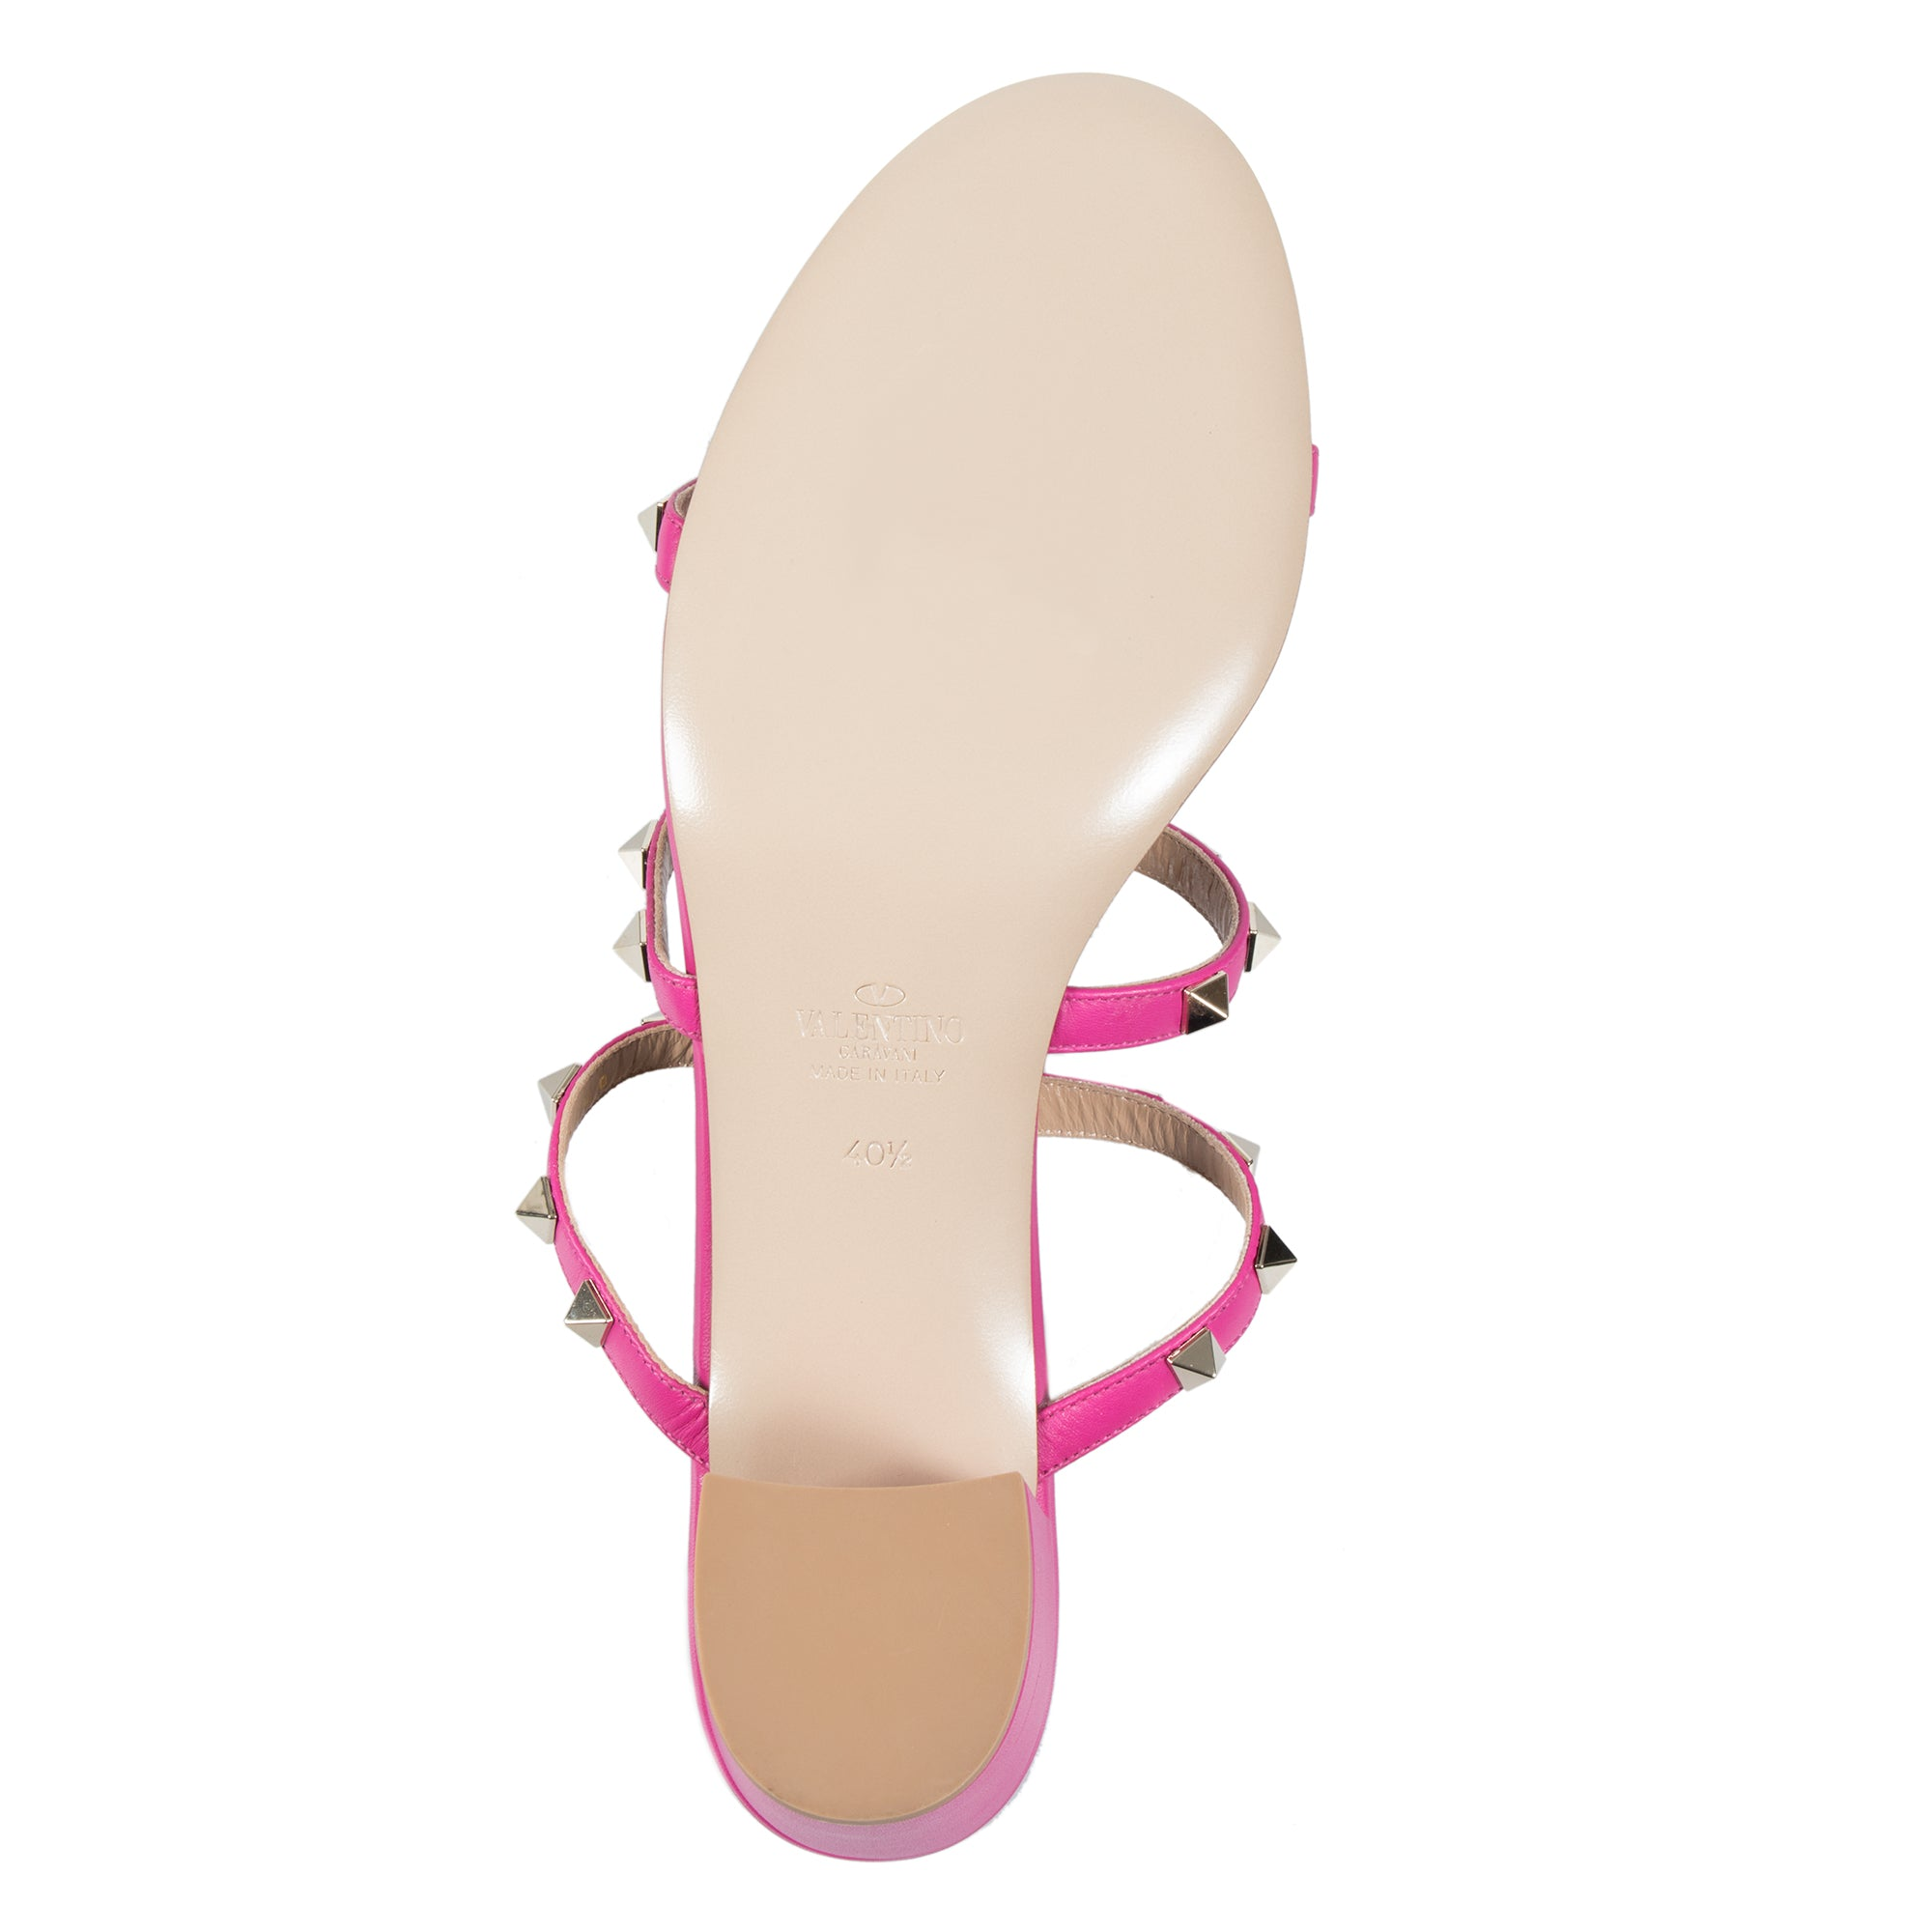 Valentino Rockstud Sandals in Bright Fuchsia